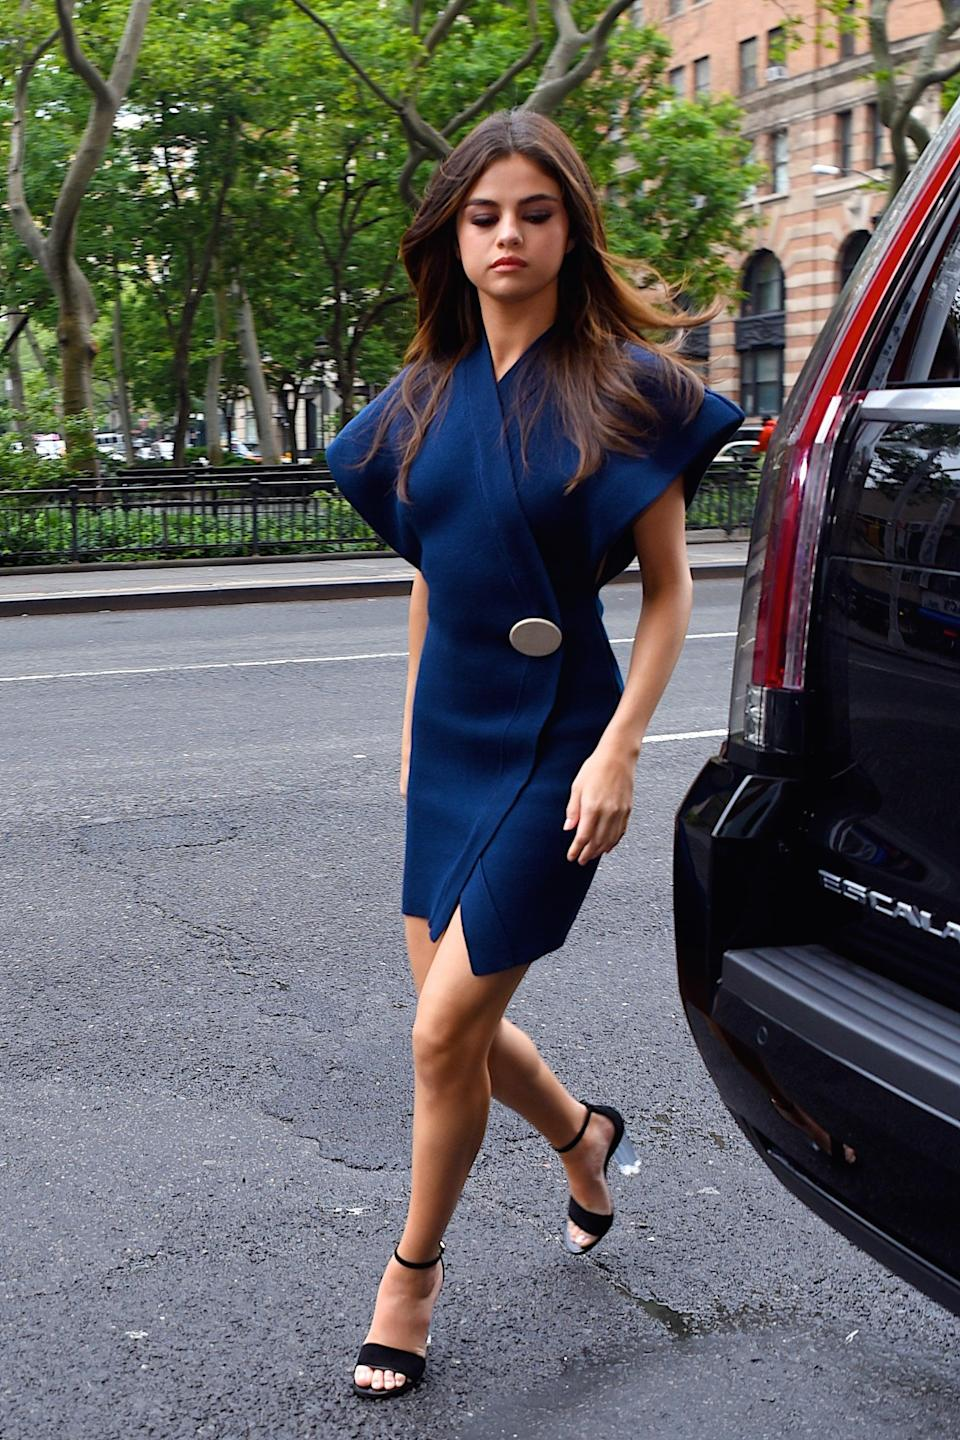 """<p>Because every gal needs a pair of chunky Lucite heels in her closet, we'd encourage you to take a tip from Selena. She stepped out in NYC in June 2017 wearing a <a href=""""https://www.popsugar.com/fashion/Selena-Gomez-Navy-Wrap-Dress-43605175"""" class=""""link rapid-noclick-resp"""" rel=""""nofollow noopener"""" target=""""_blank"""" data-ylk=""""slk:navy Jacquemus wrap dress"""">navy Jacquemus wrap dress</a> and Louis Vuitton shoes, effortlessly mixing blue and black.</p>"""